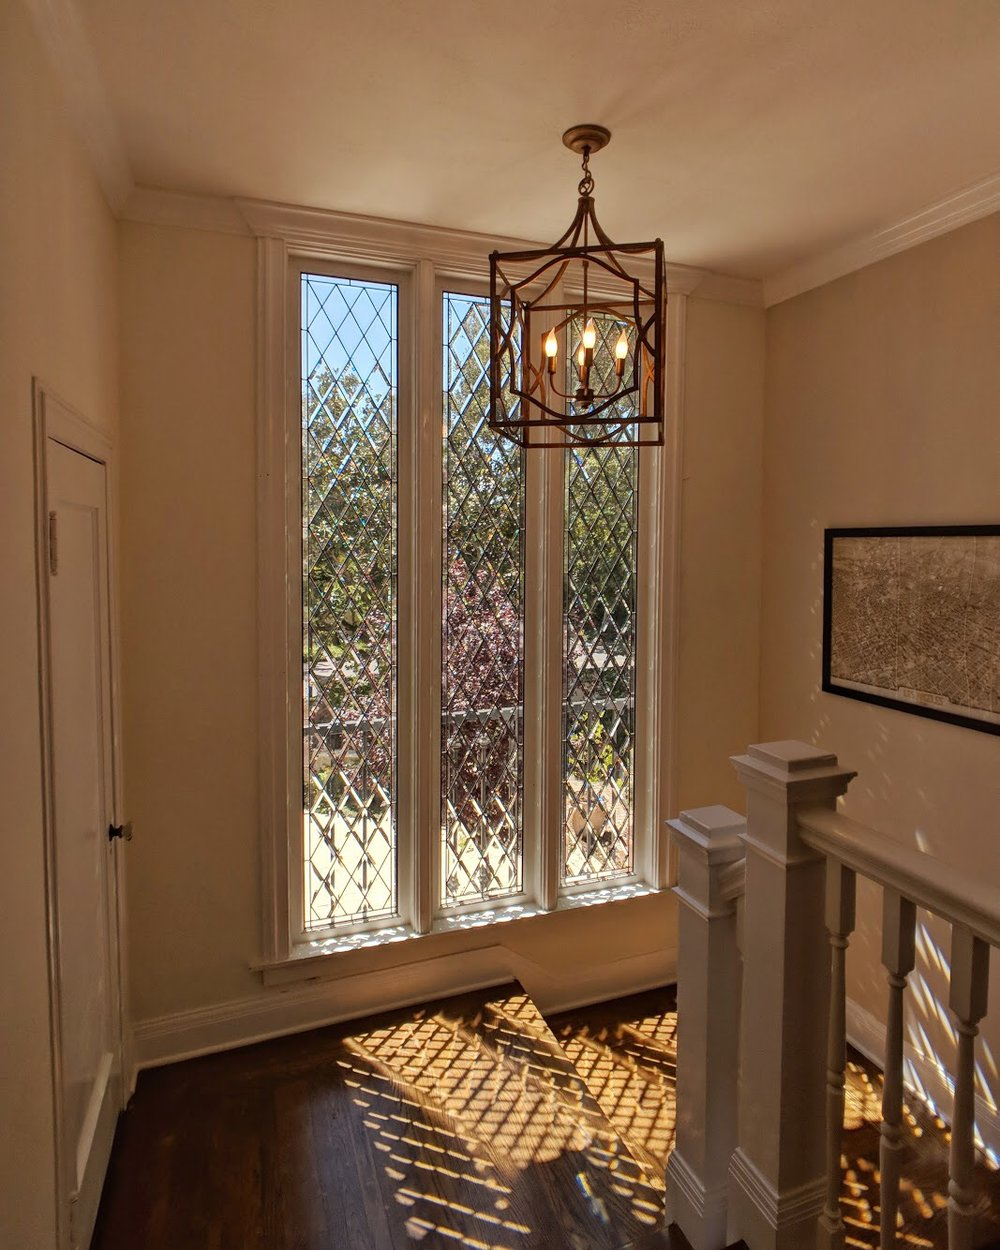 stained glass leaded glass design legacy glass studios menlo park bay area california custom design beveled diamonds seedy glass light refraction beveled glass elegant high end home light pattern.JPG